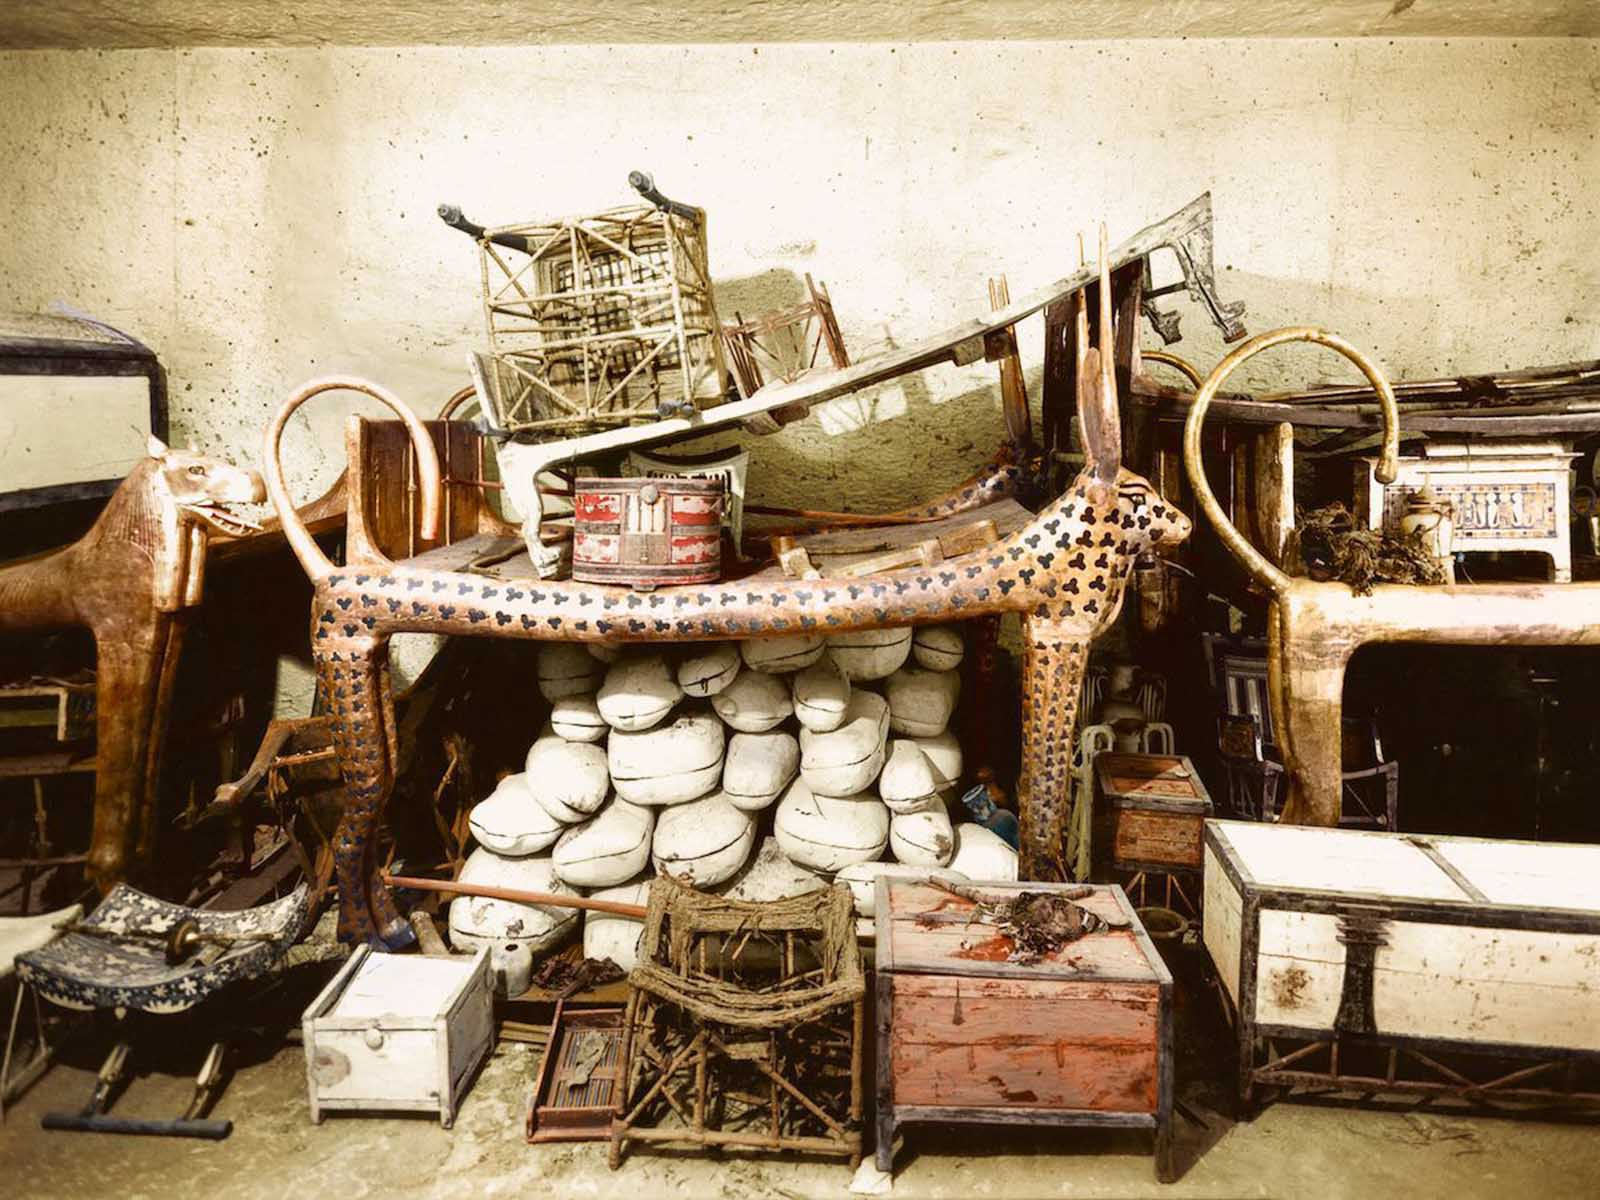 A ceremonial bed in the shape of the Celestial Cow, surrounded by provisions and other objects in the antechamber of the tomb.